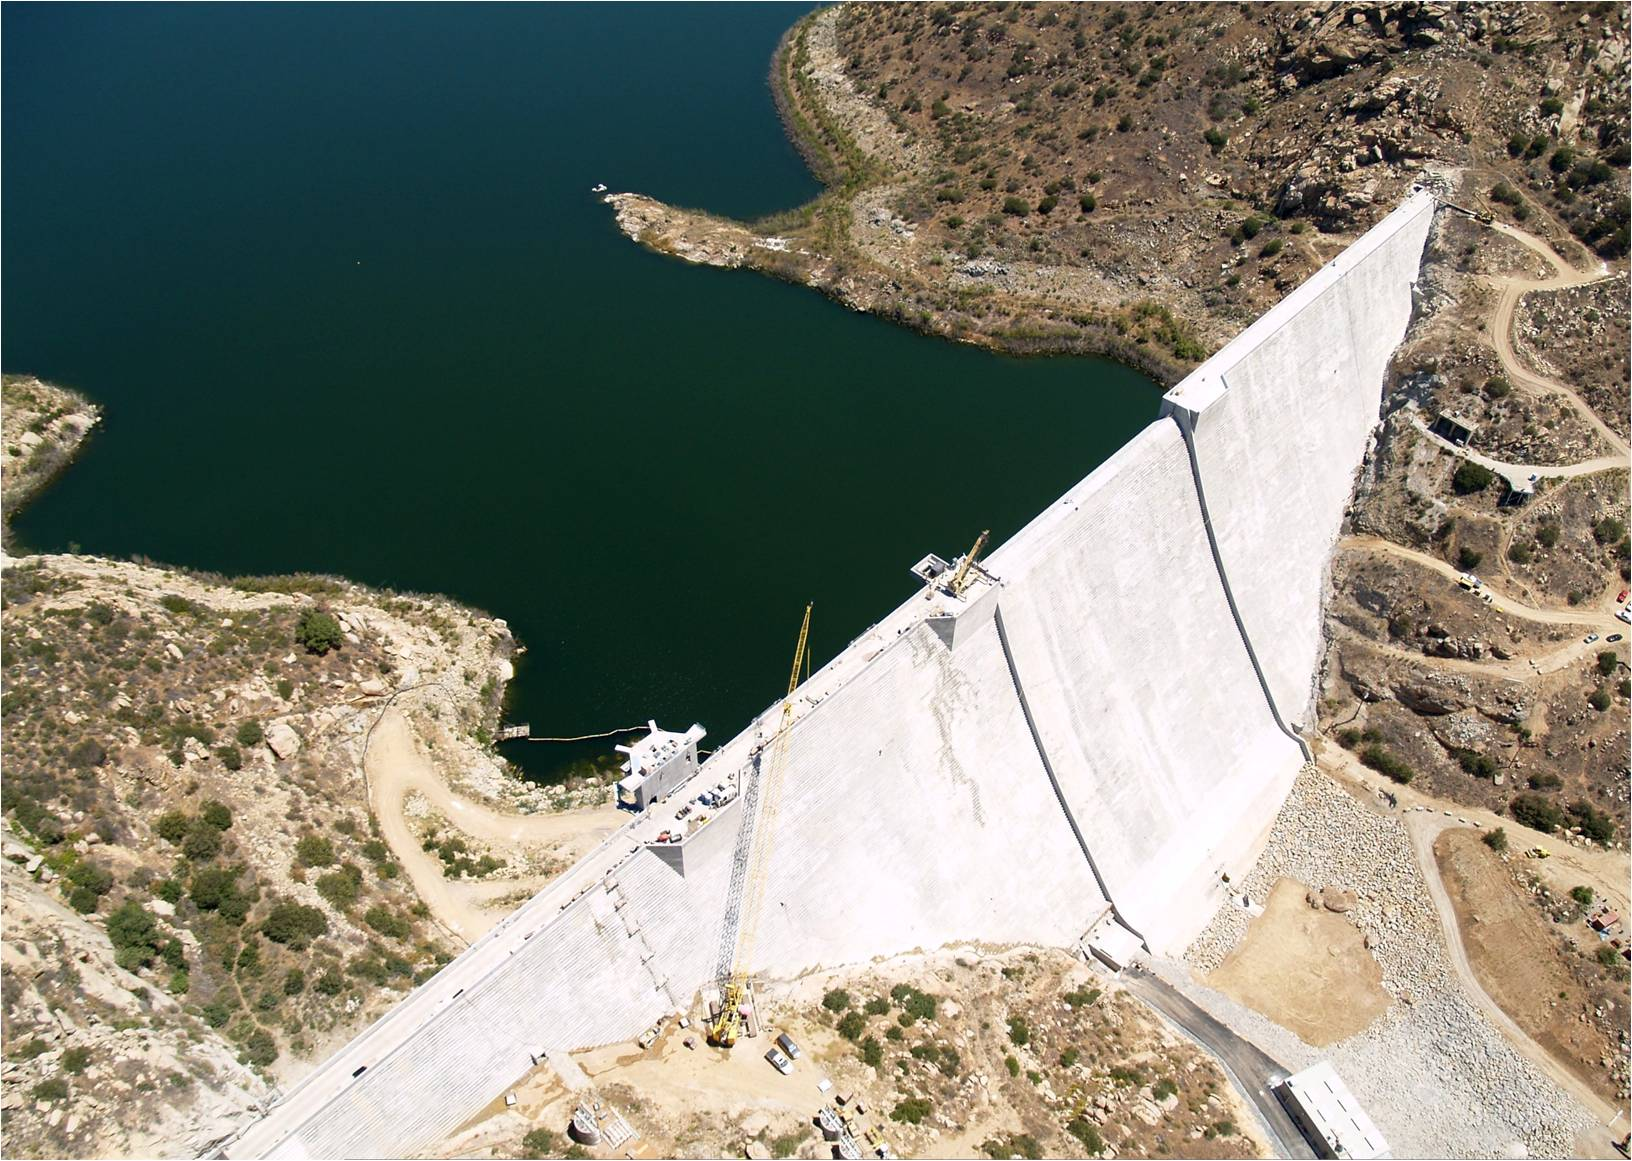 San Diego Is Saving Water, But Has Plenty to Go Around - Times of ...